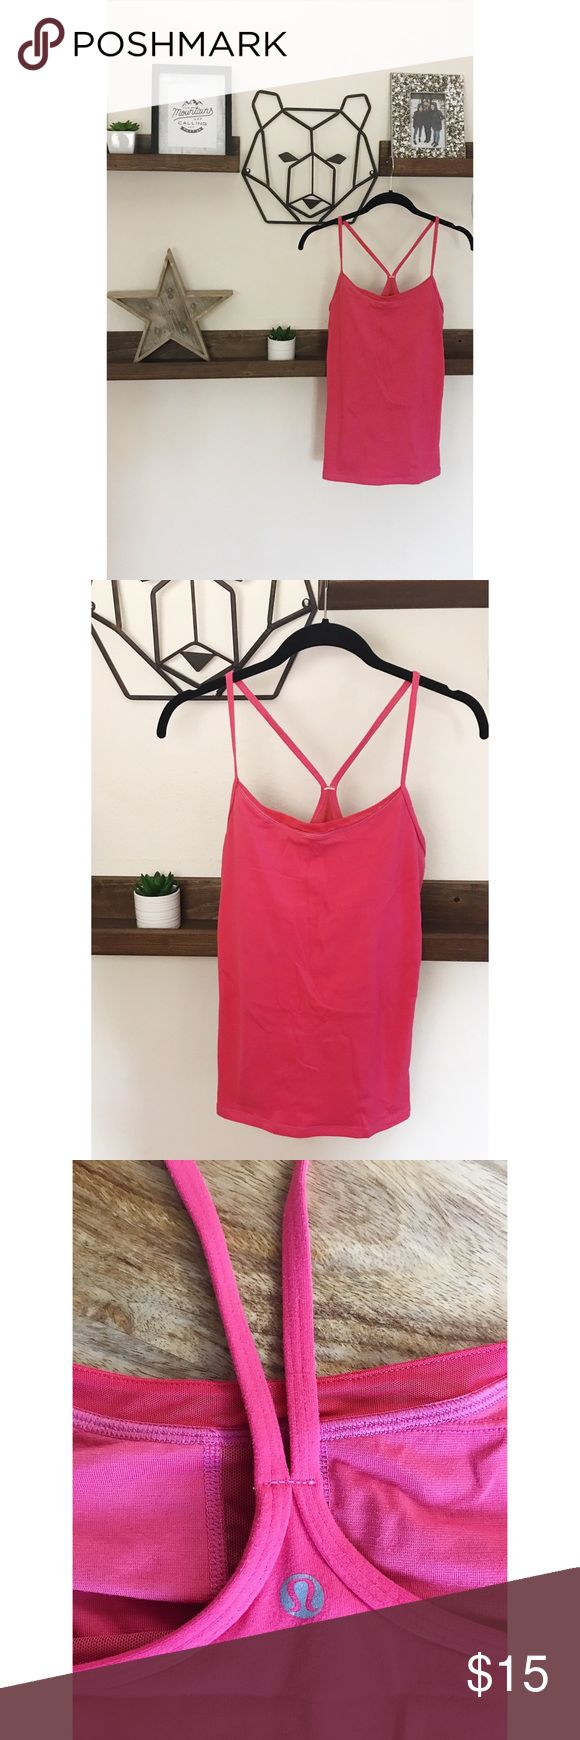 [LULULEMON] Power Y Tank Top EUC • still plenty of life left. Has a small mesh detail on the front. Very minor pilling, price reflects ❤️ no cups or size dot found, runs close to a medium. I would gather either a 6 or 8. make me an offer!  Stock images to show fit. Flow freely through your practice in this racerback skinny-strap tank with built-in support. Slip a layer over top to transition seamlessly to post-sweat coffee dates. lululemon athletica Tops